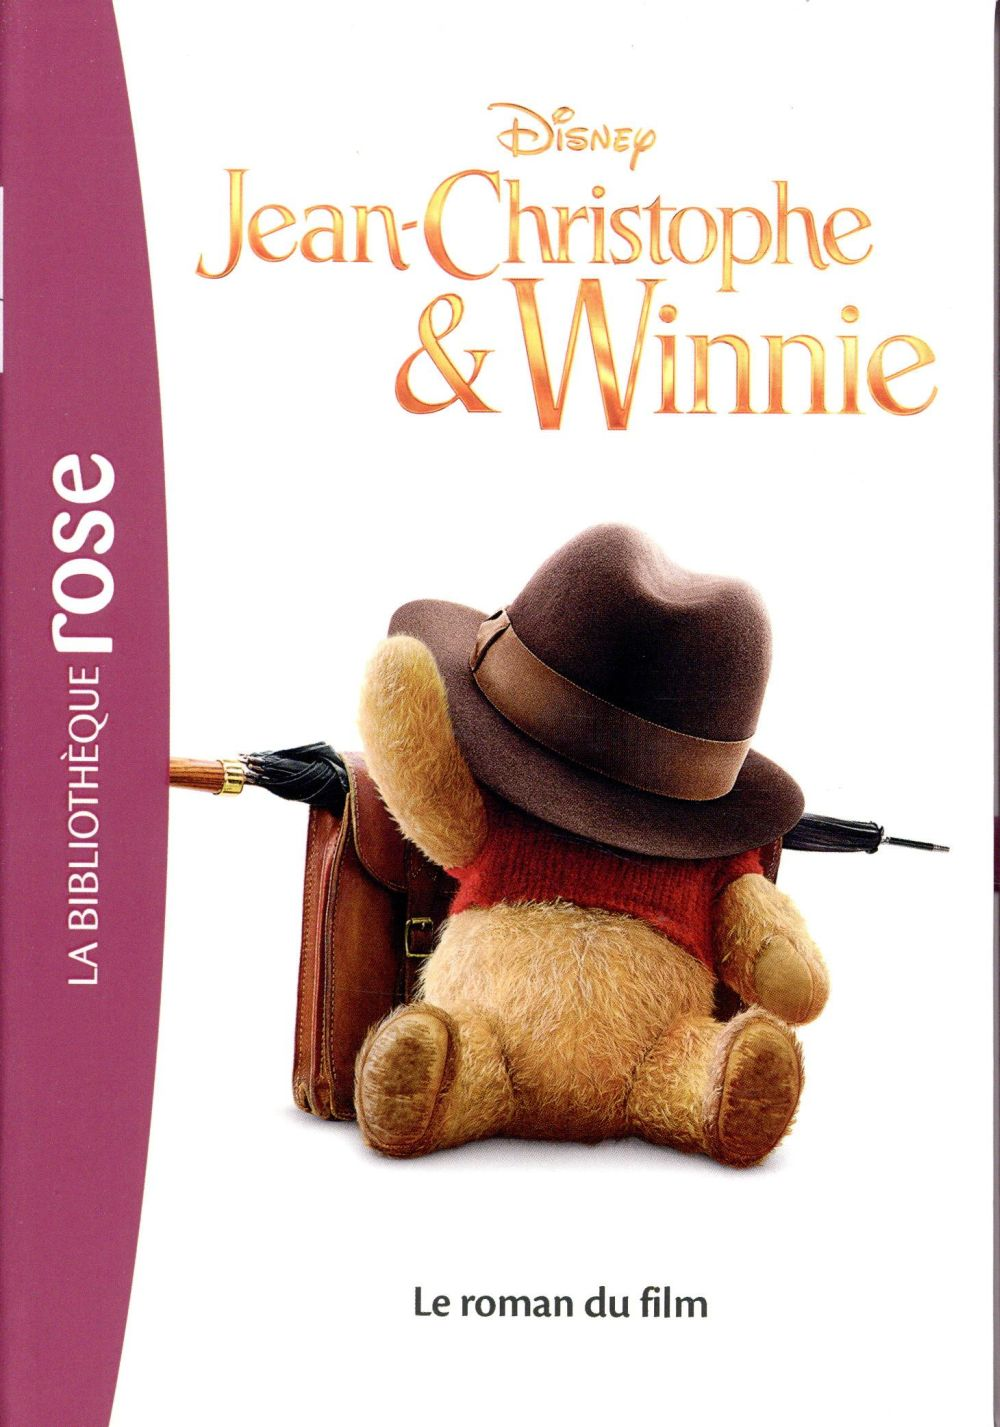 JEAN CHRISTOPHE ET WINNIE   LE ROMAN DU FILM   FILMS BB ROSE 10 12   T0